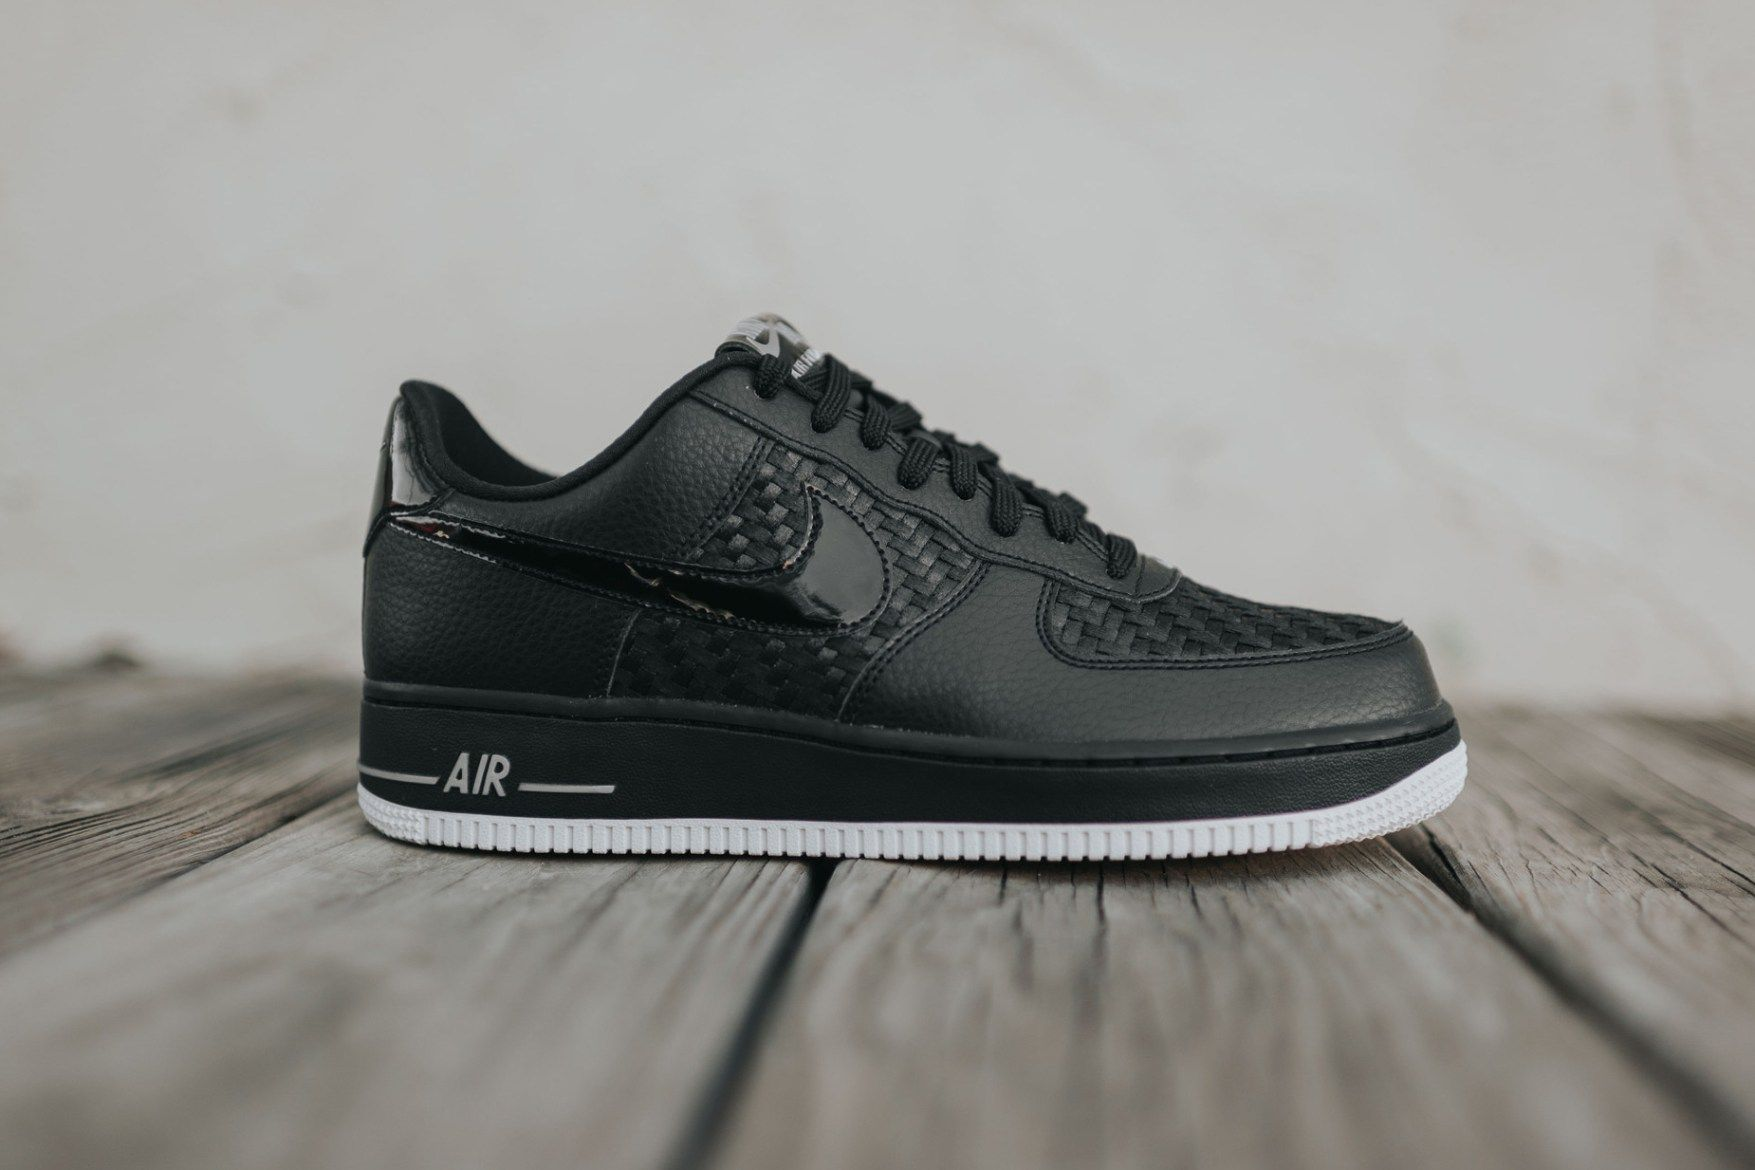 nike air force one low black gum trees